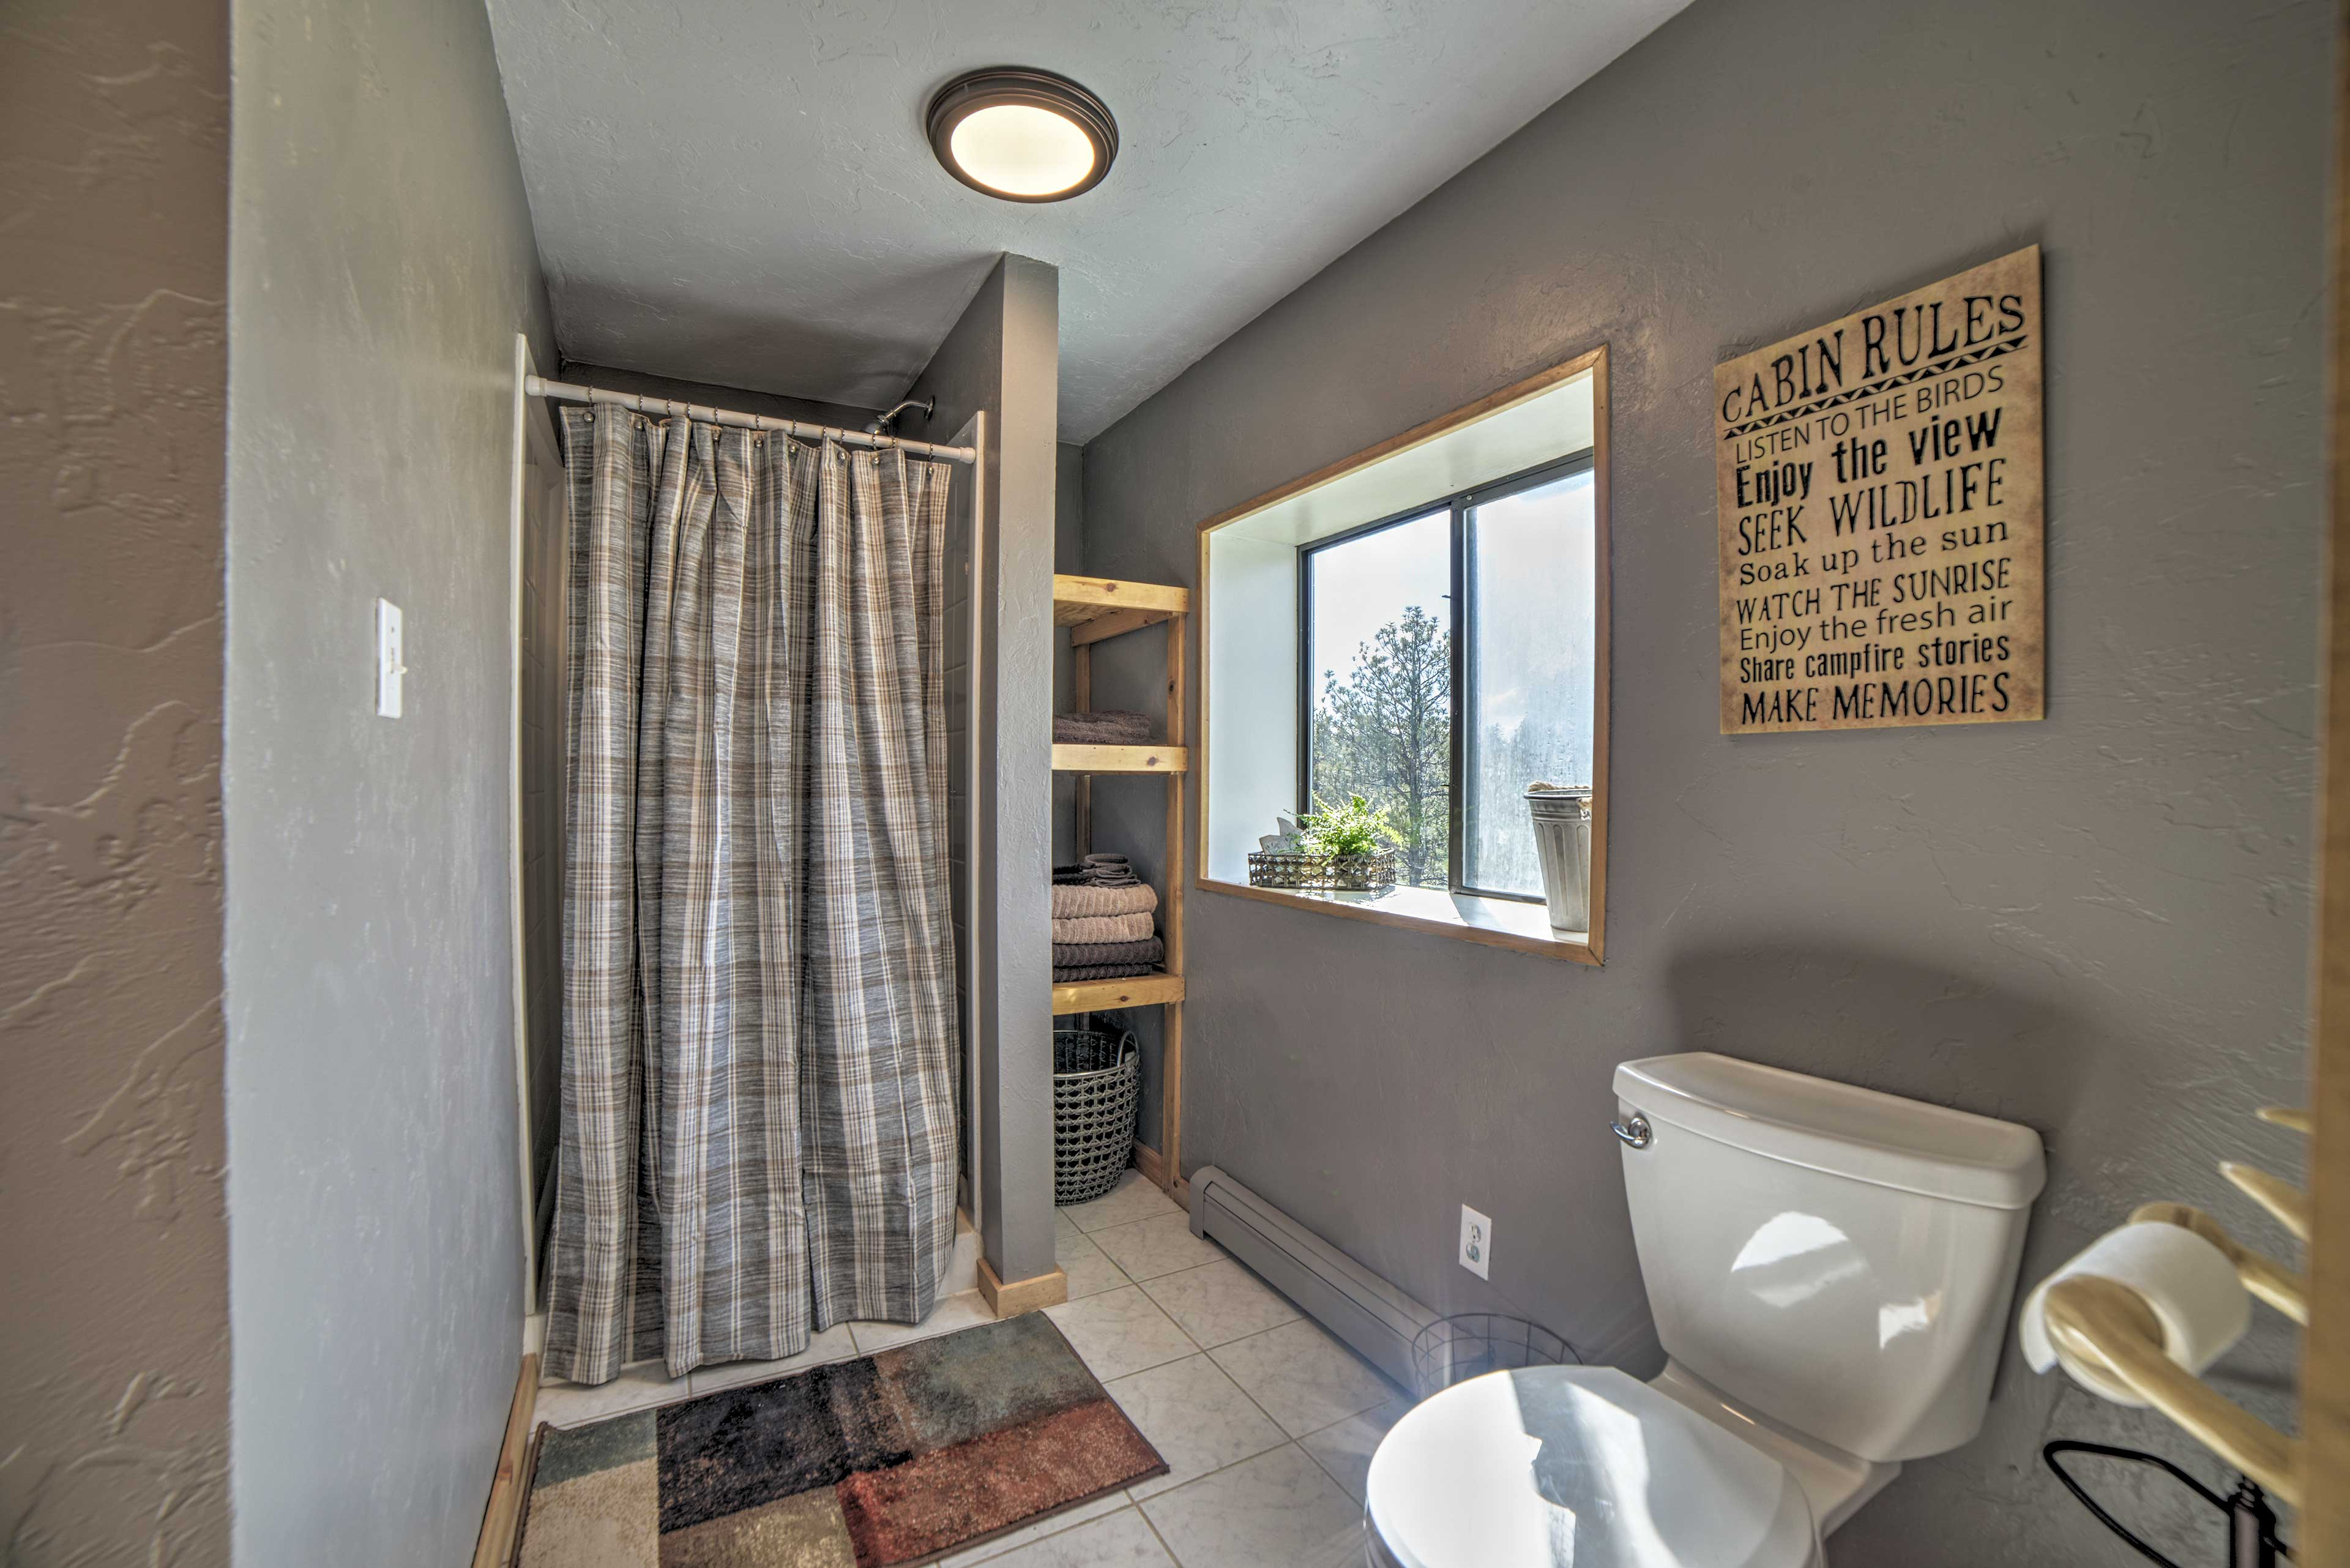 First Full Bathroom | Complimentary Toiletries | Towels Provided